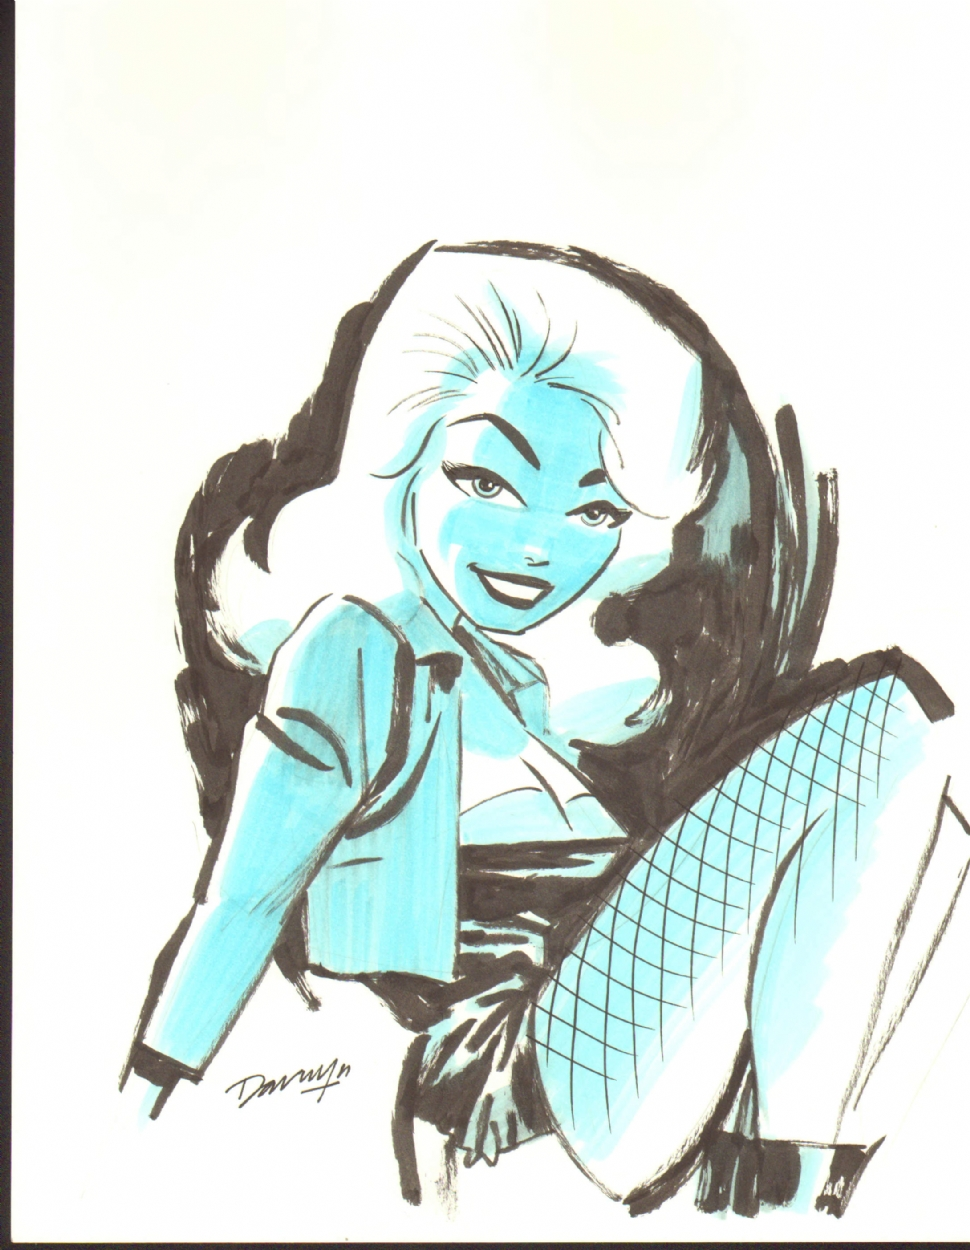 Black Canary - Darwyn Cooke